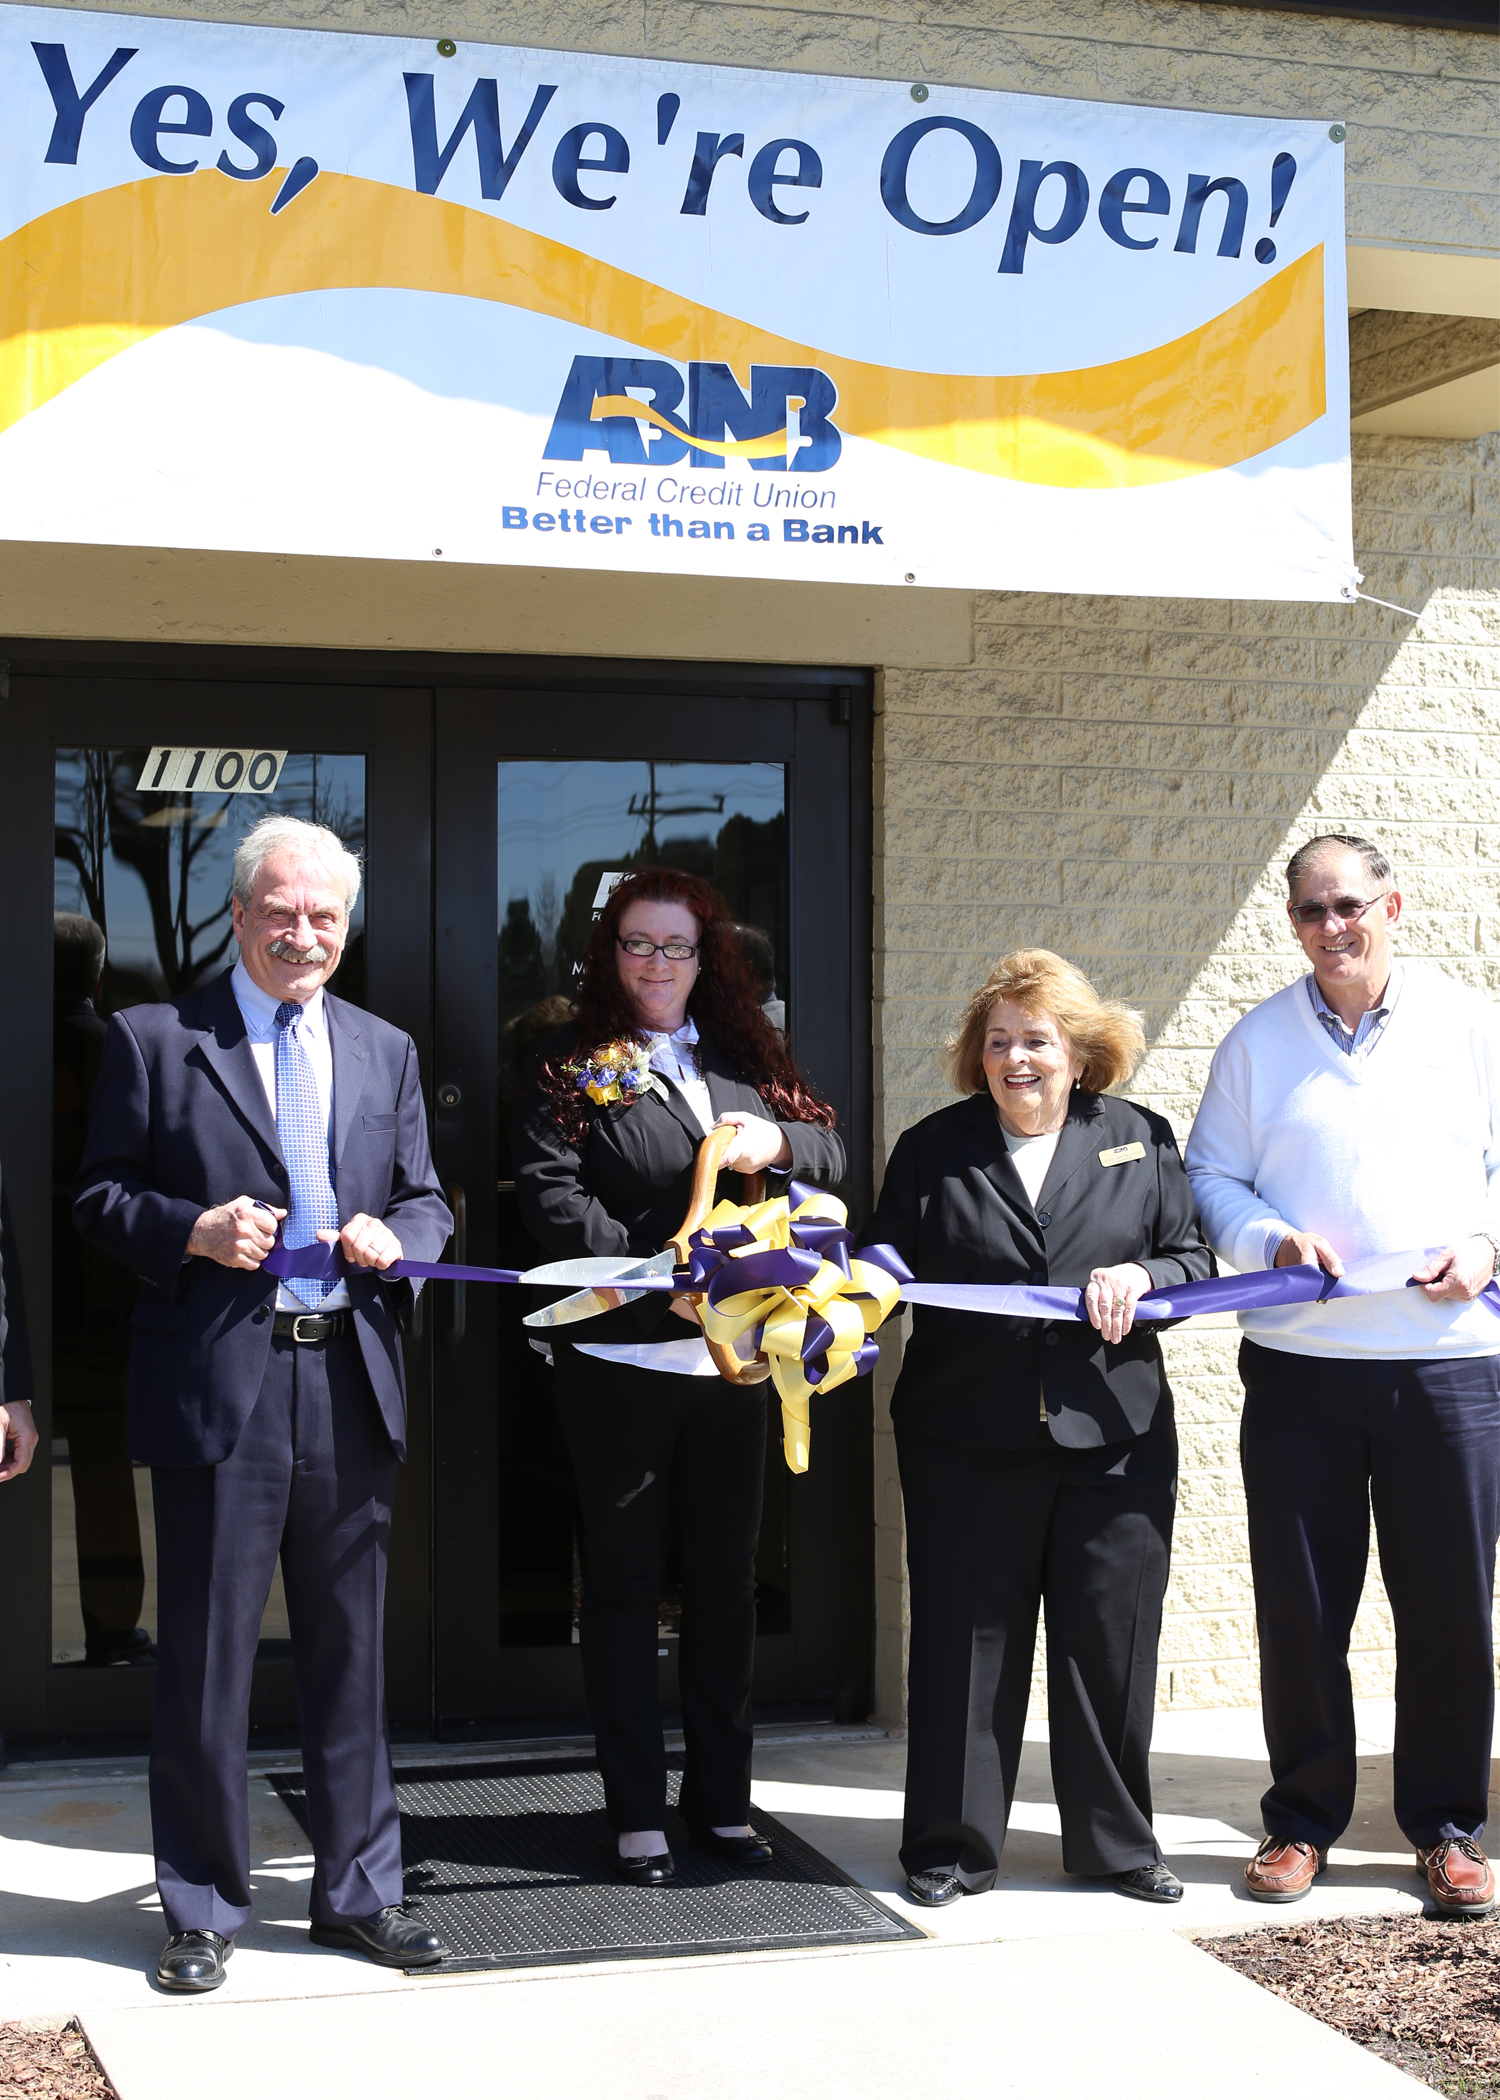 ABNB Federal Credit Union opens a new branch in Virginia ...